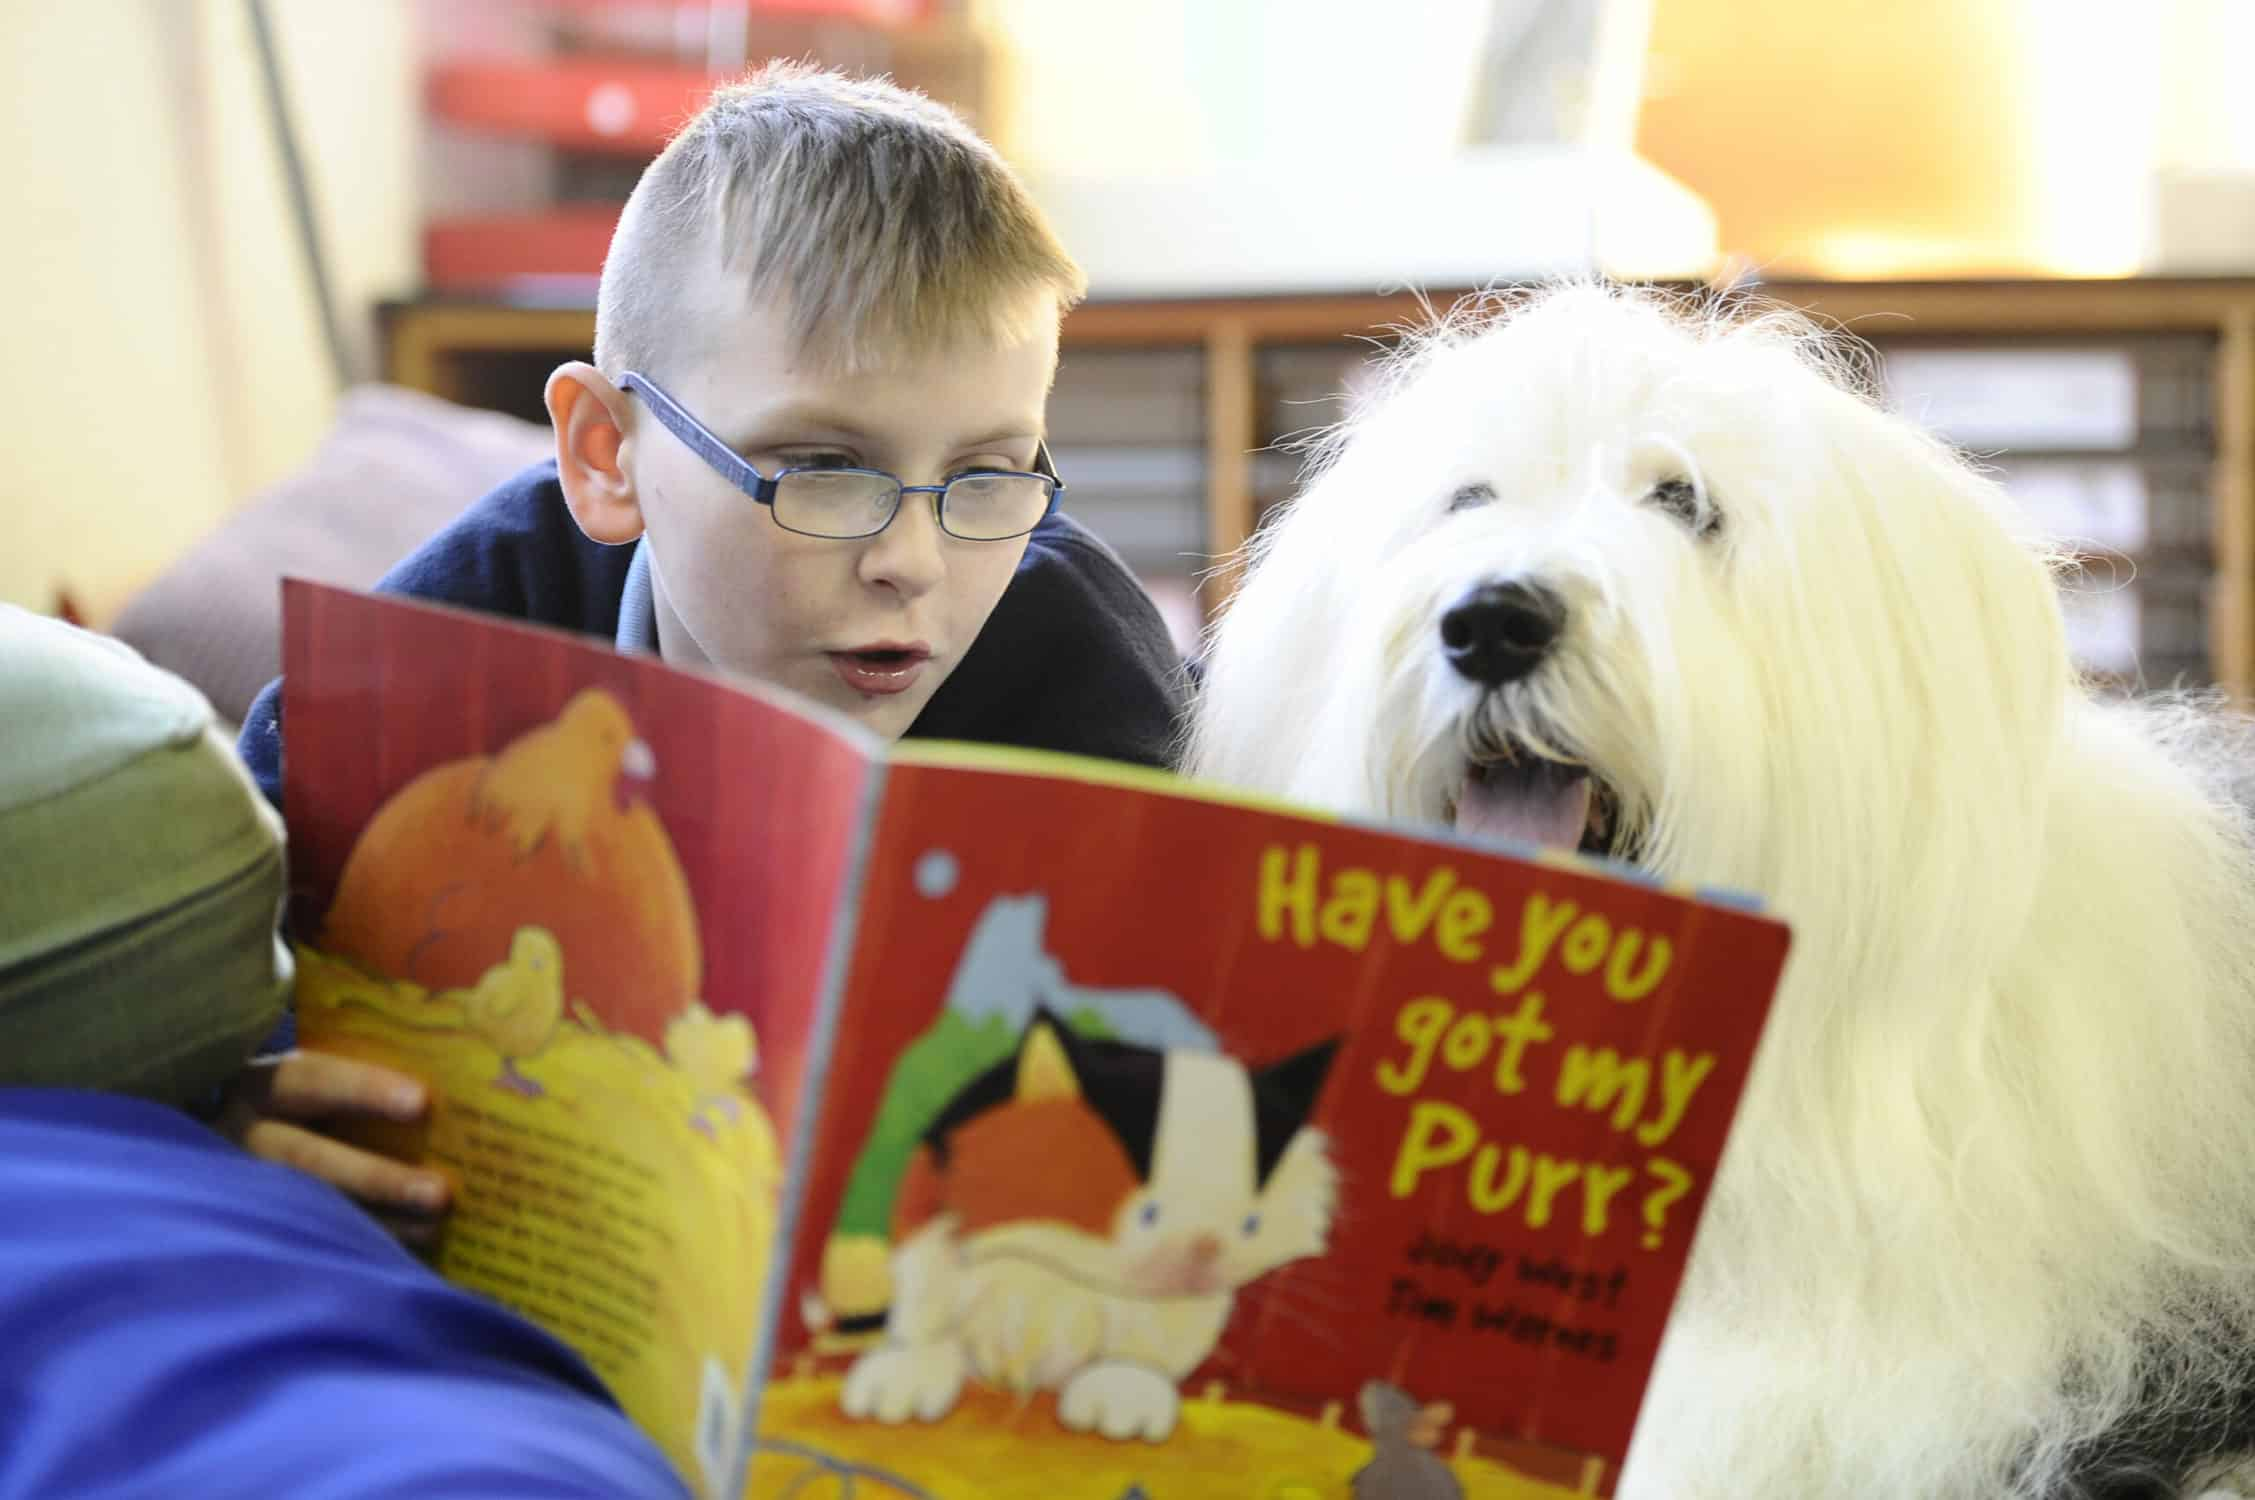 When kids read to dogs their reading and confidence is given a boost. The Kennel Club explains why they train dogs to read in schools to improve child literacy